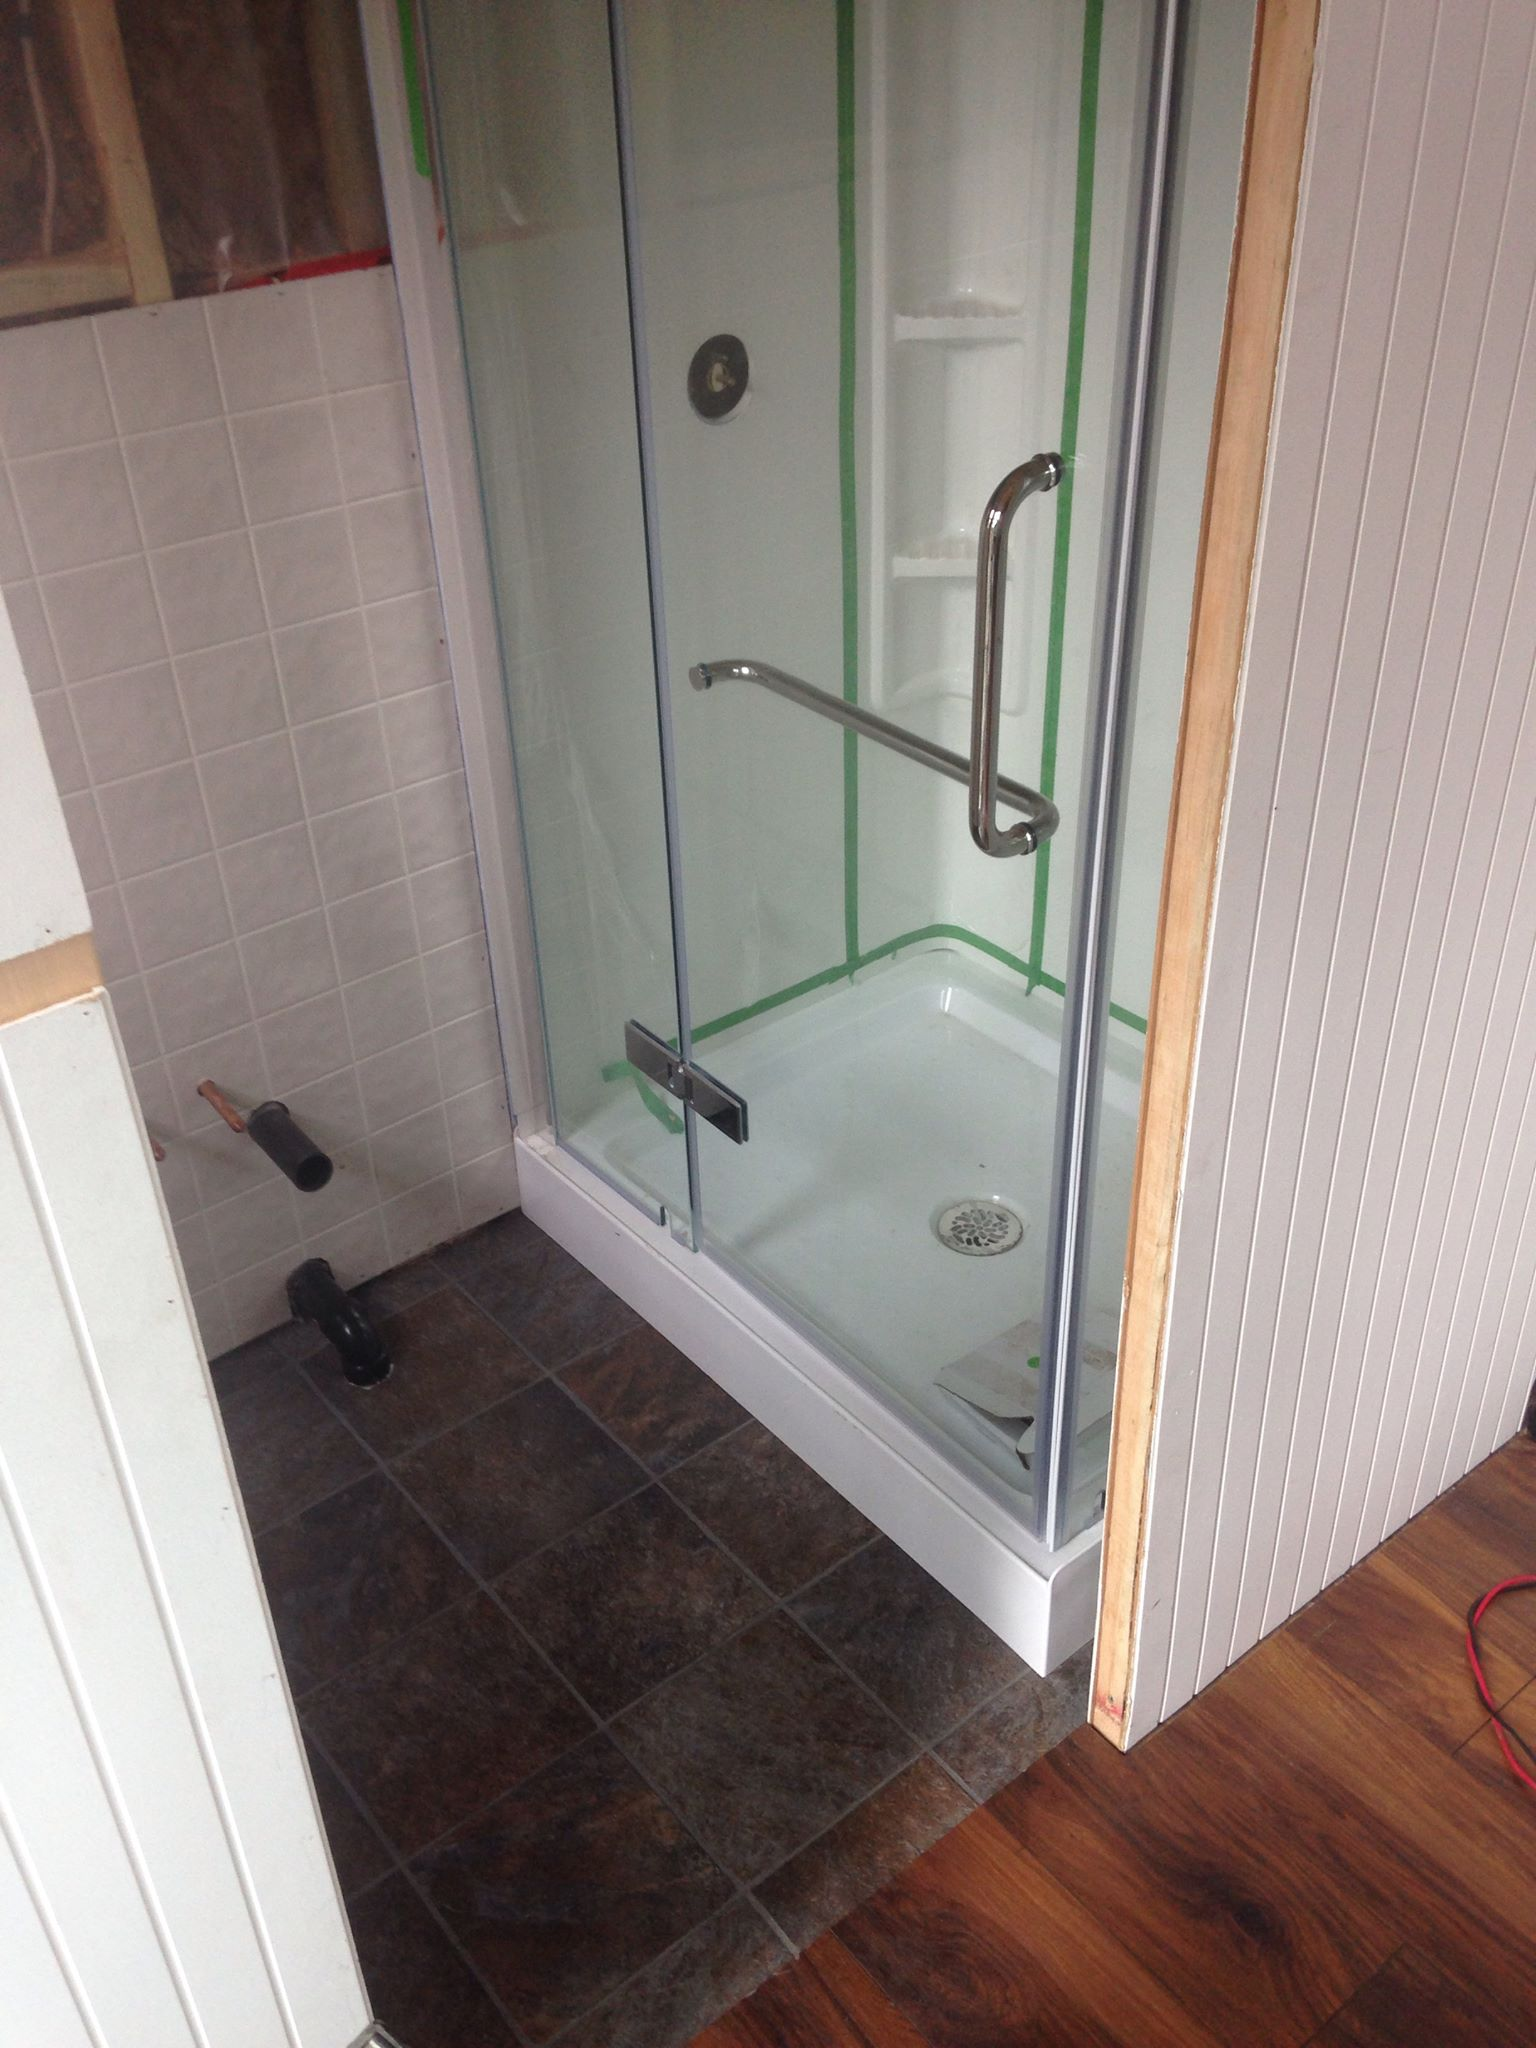 For the ladies: a full size glass shower & laminate tile flooring in the bathroom. The door slides behind the shower, and is opaque to let the light through even when closed (but still give you privacy!).